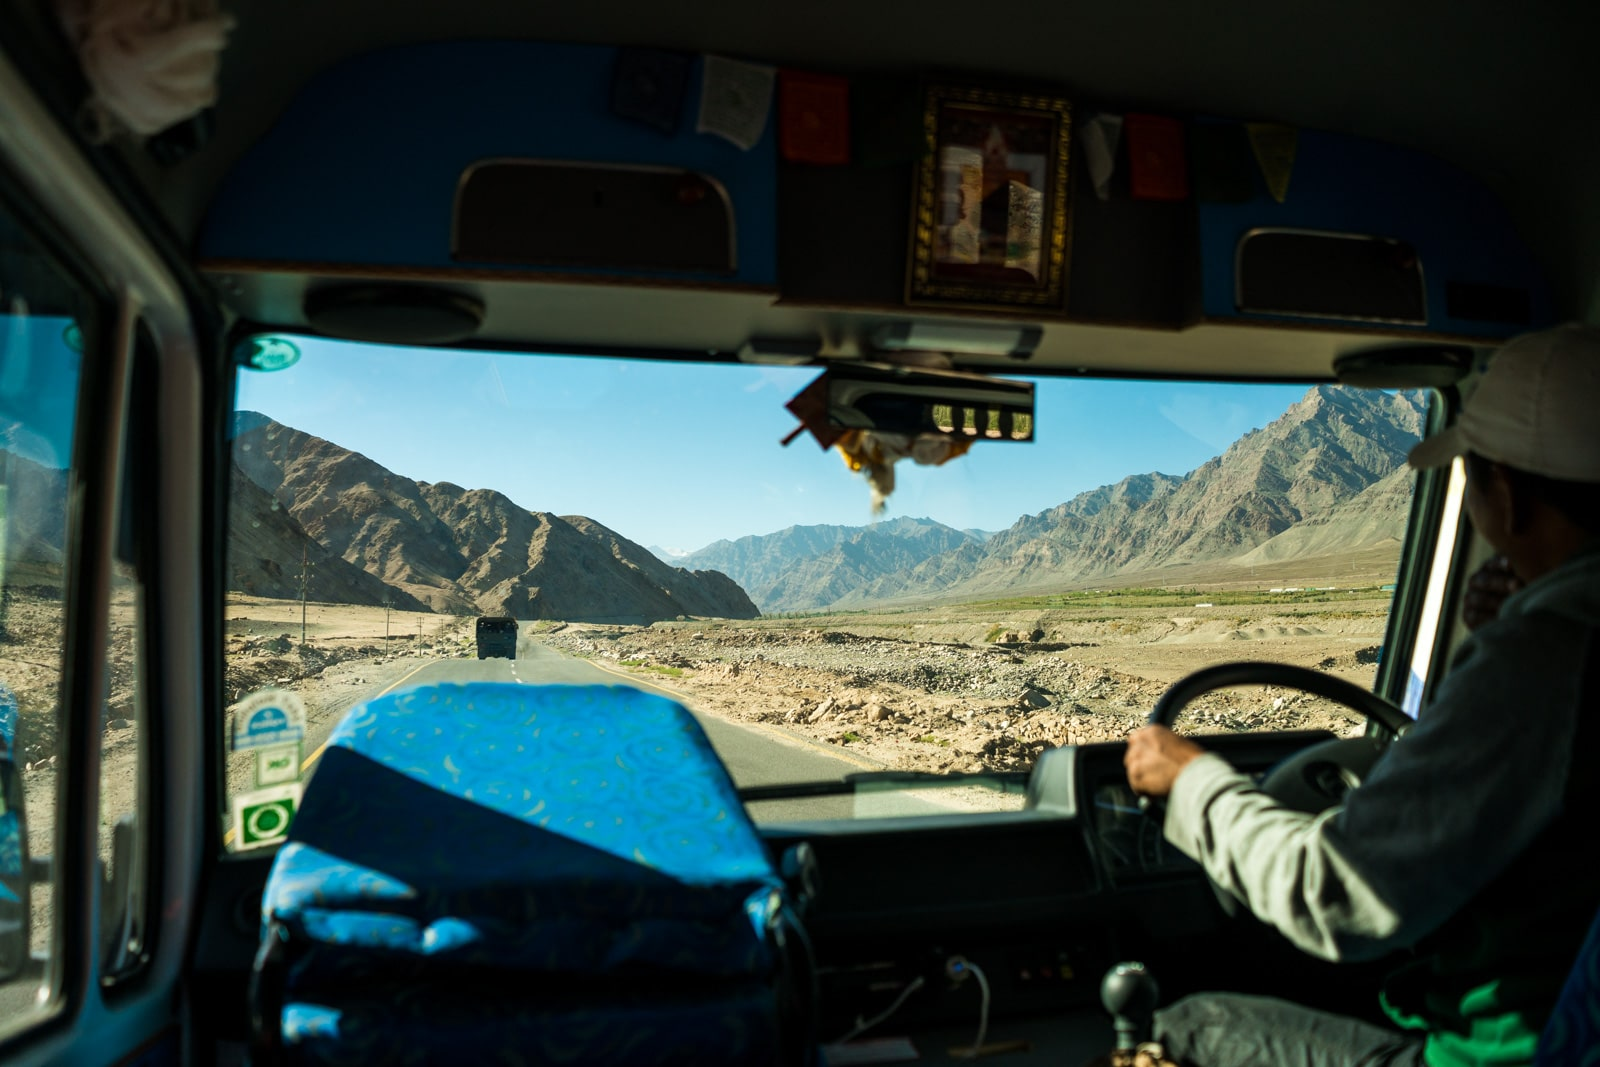 Hitchhiking the Leh - Manali highway in India - View of Ladakh from a minibus interior - Lost With Purpose travel blog